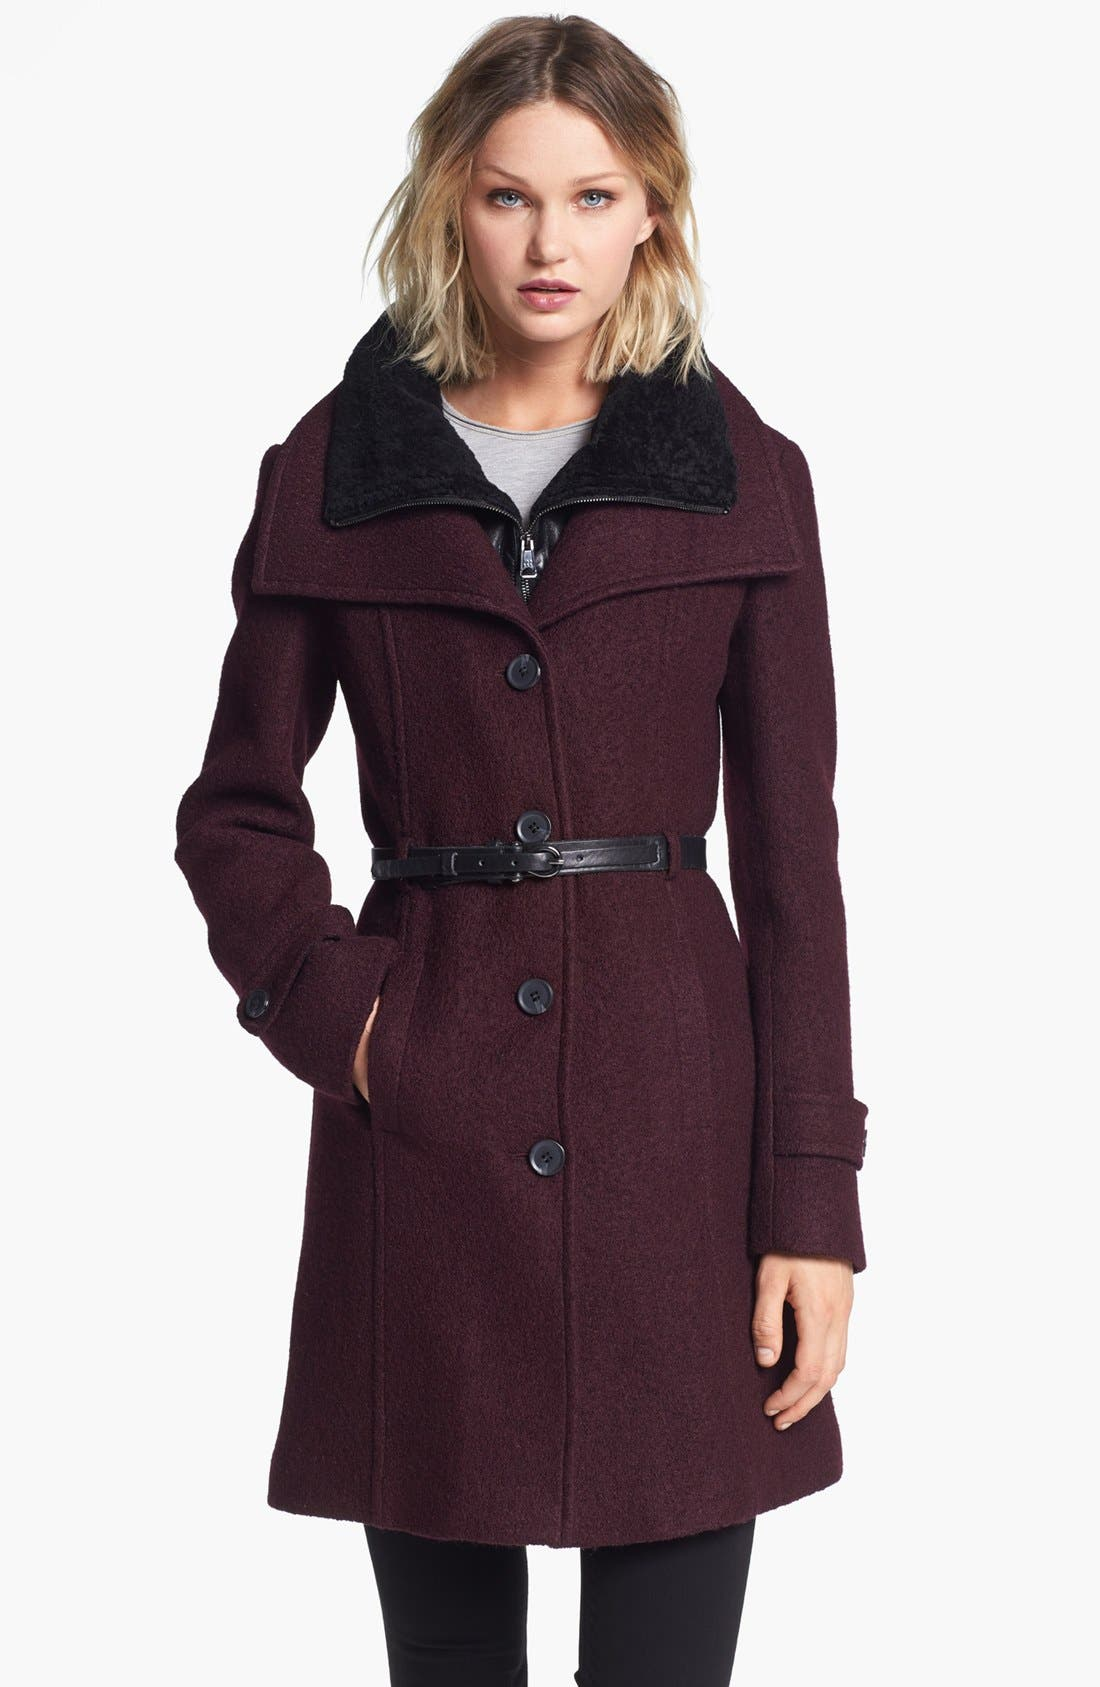 Alternate Image 1 Selected - Soia & Kyo Wing Collar Coat with Genuine Shearling Inset